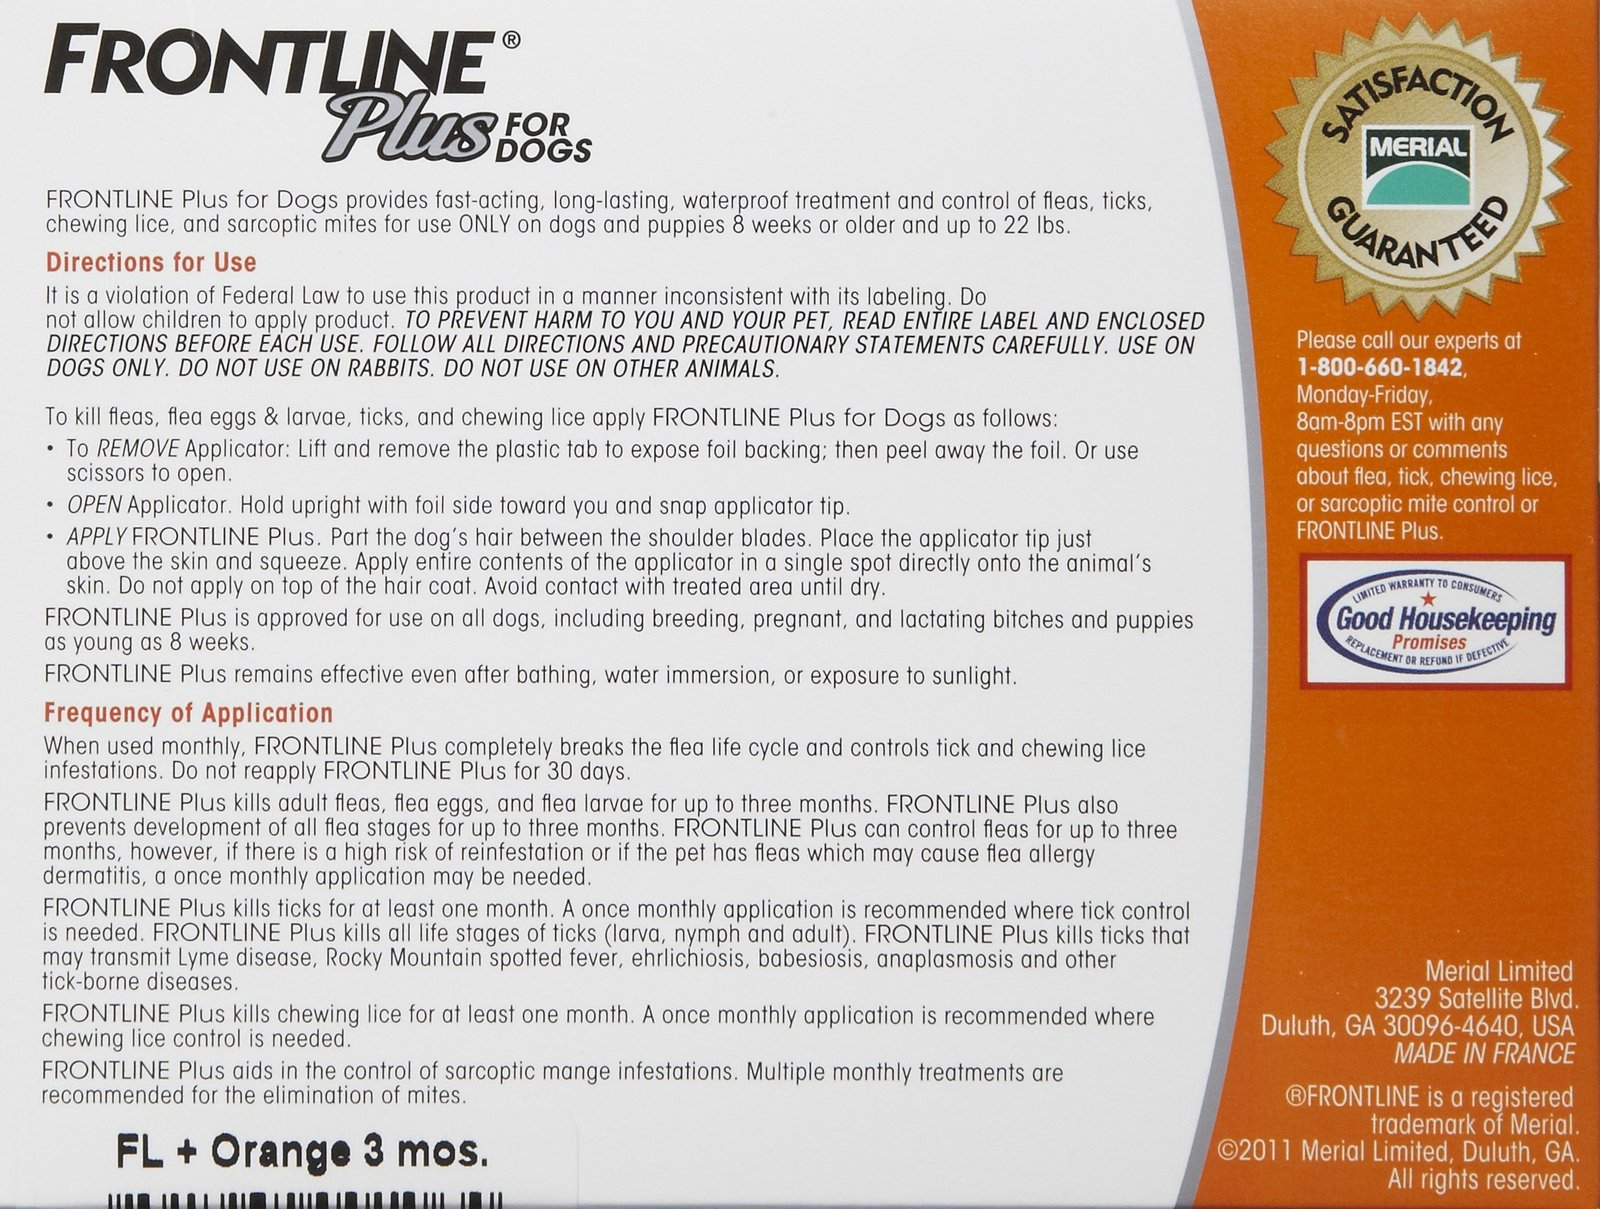 Frontline Plus for Dogs 0-22 lbs, Orange, 3 Pack - 1010177